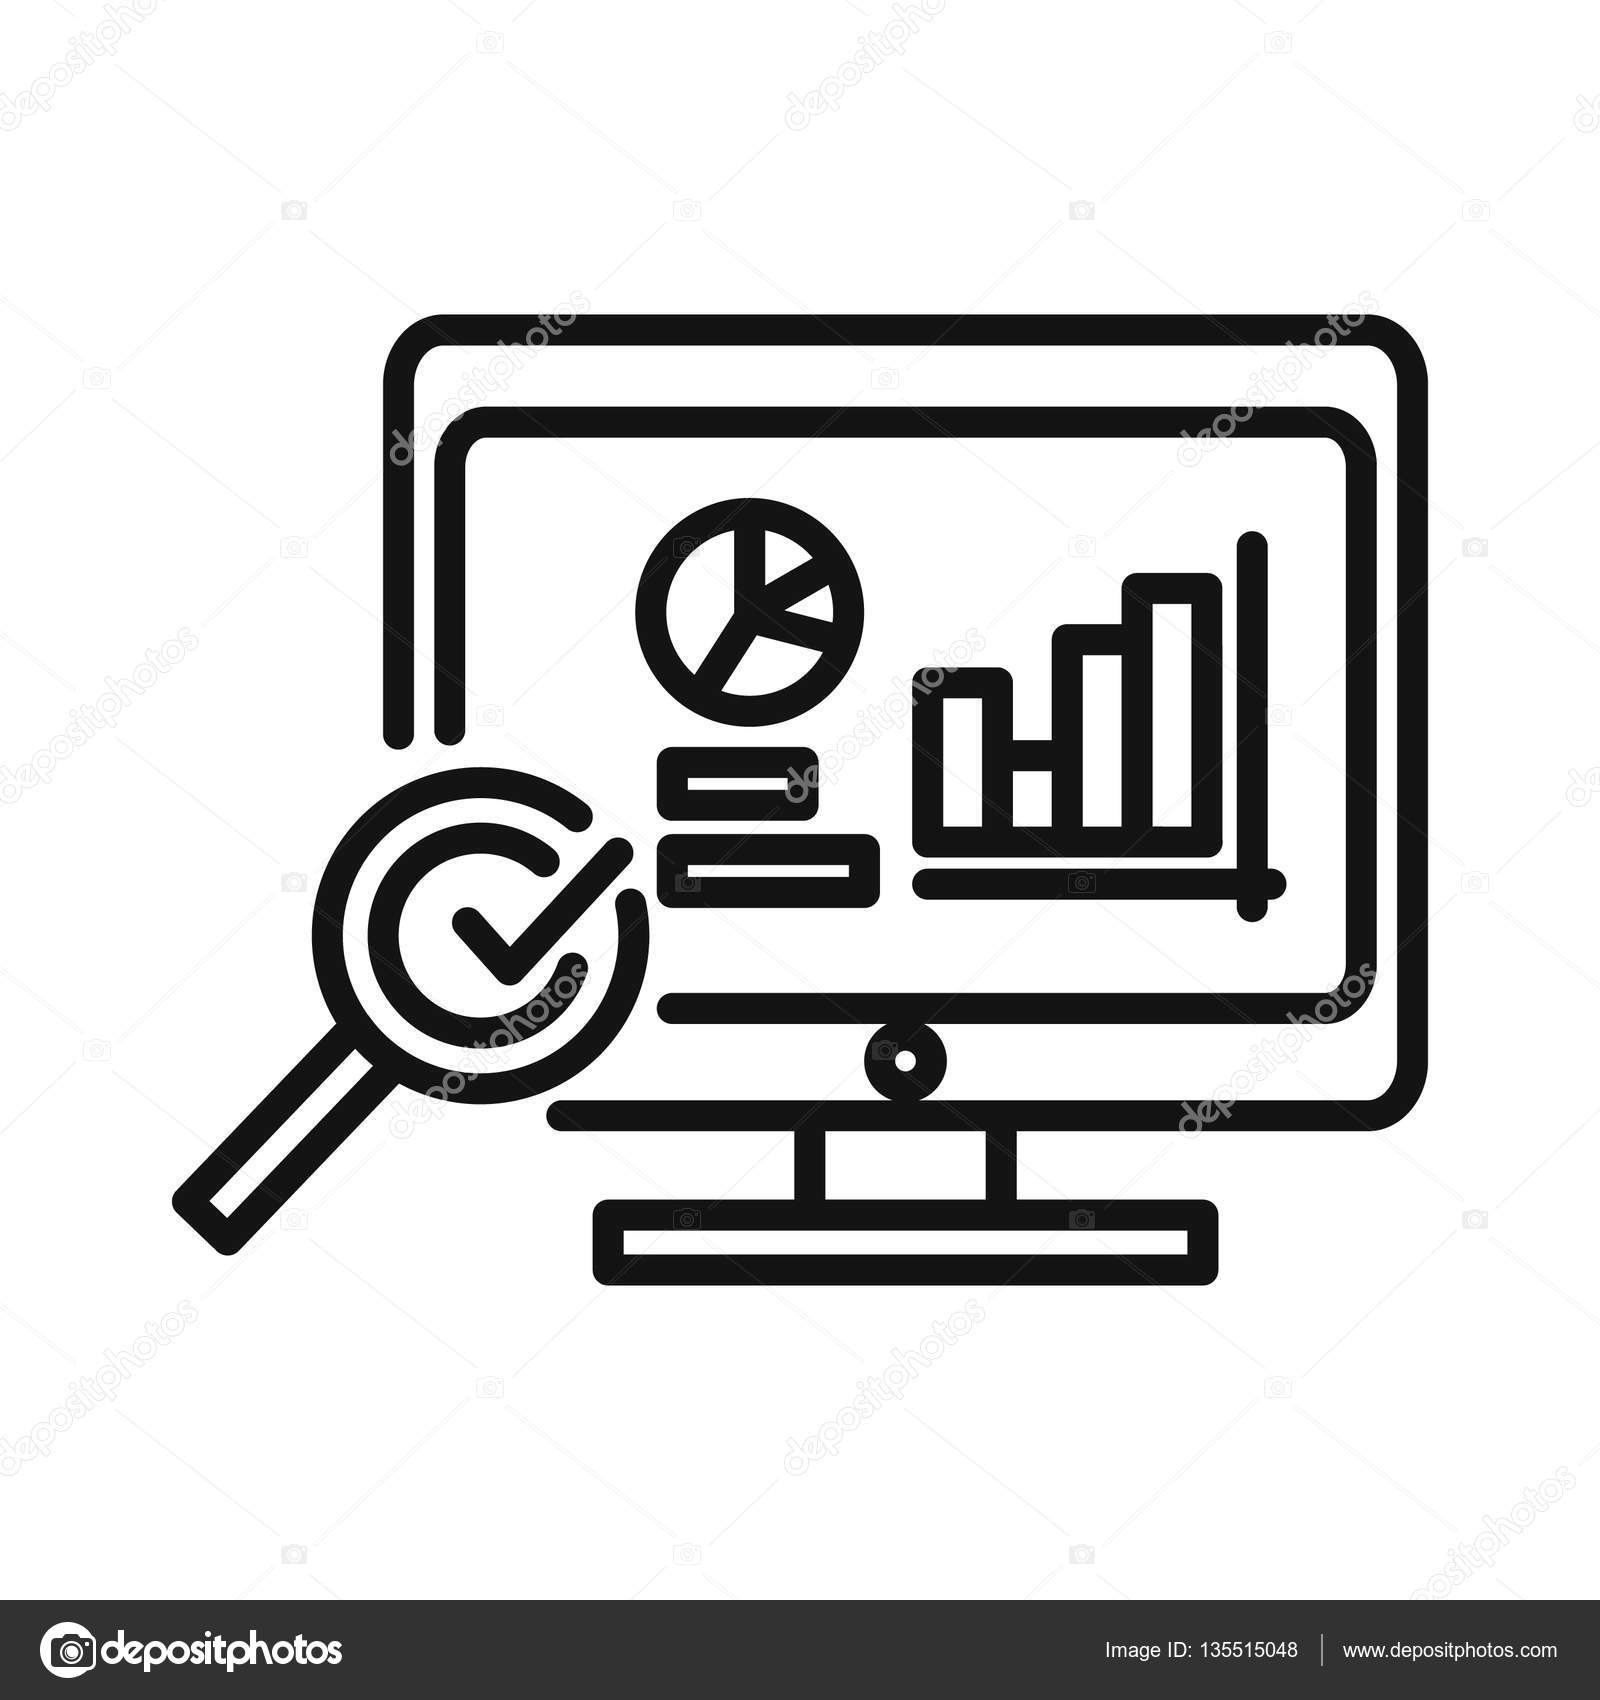 monitoring project data icon — Stock Vector